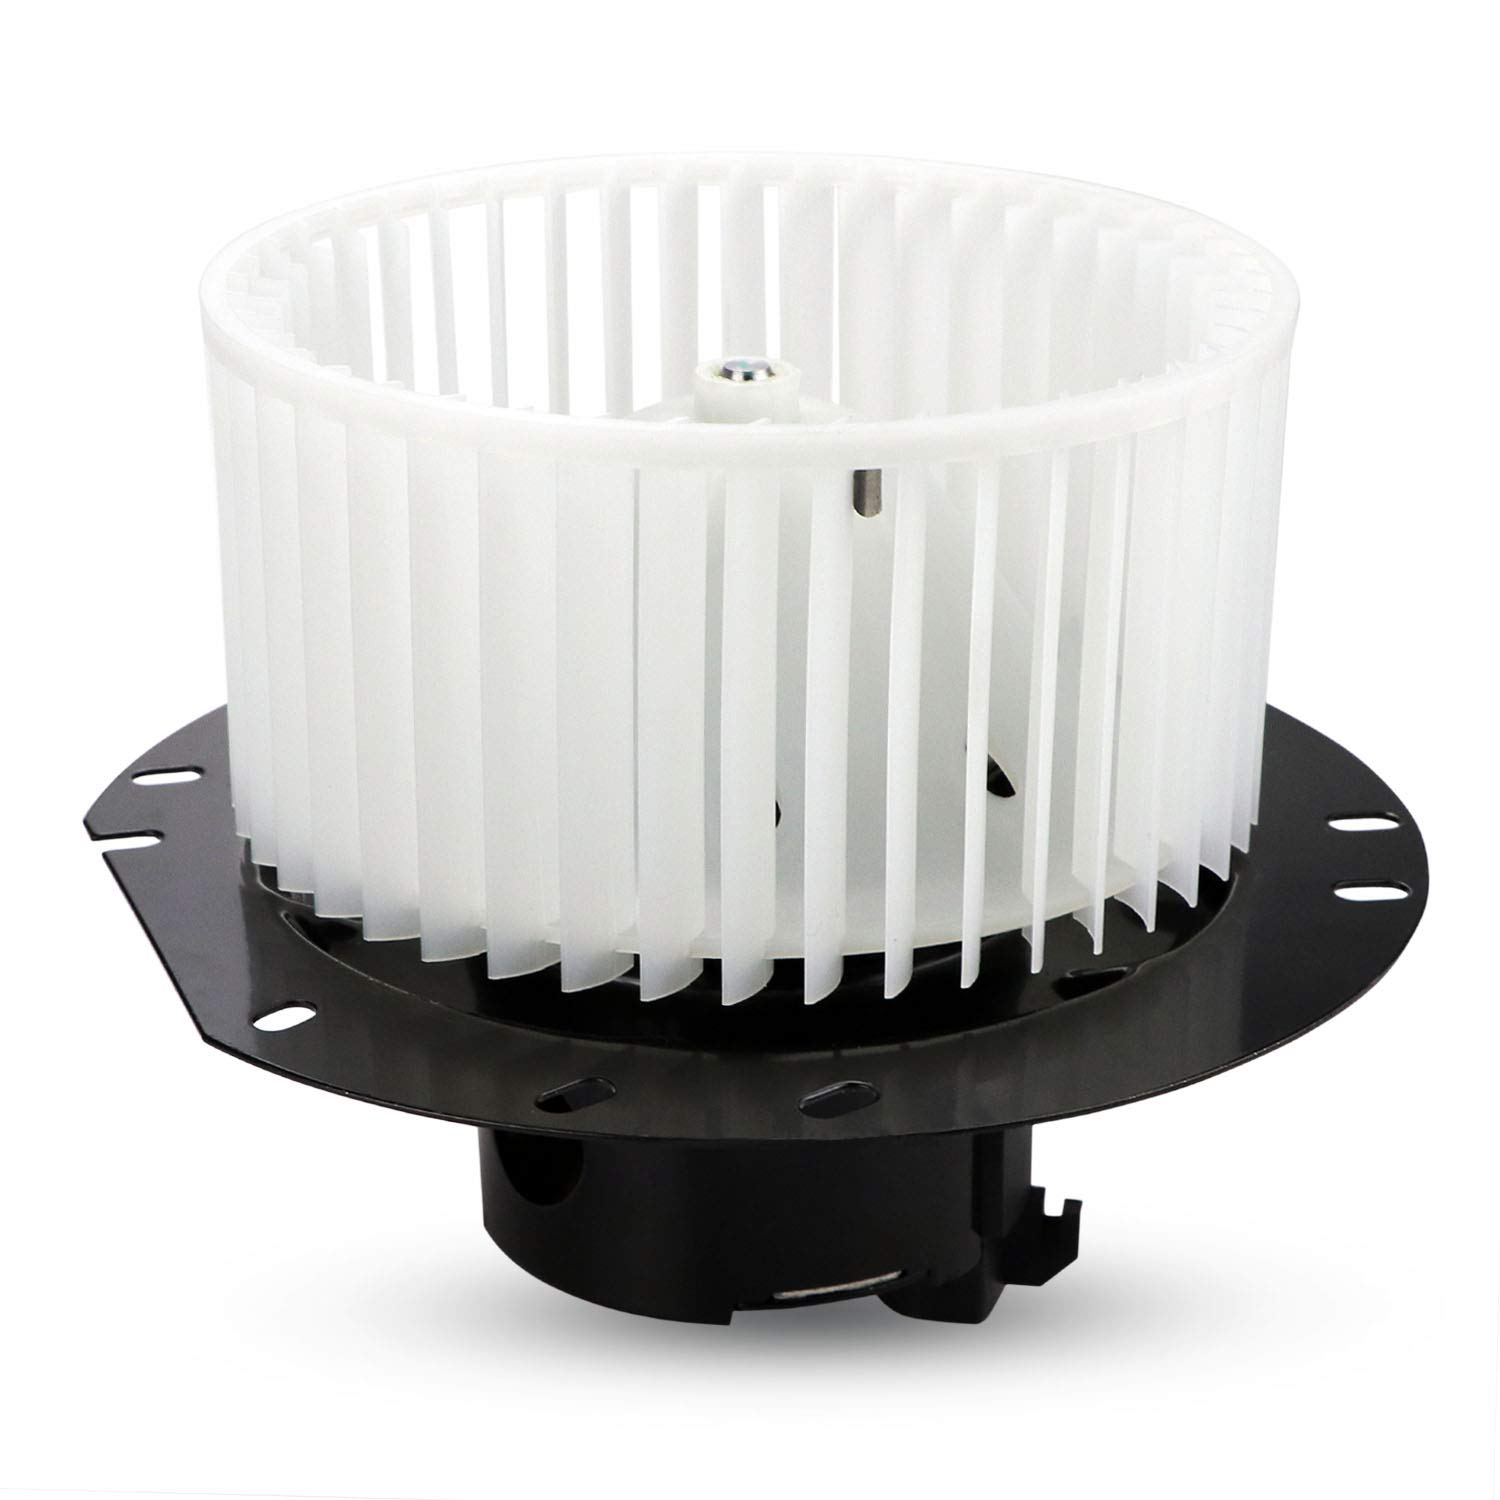 2003-2005 Ford E150 Club Wagon 1997-2002 Ford E150 Econoline Ford E150 Econoline Club Wagon Ford E250 Youxmoto HVAC Plastic Heater Blower Motor with Fan Cage fit for 2003-2014 Ford E150